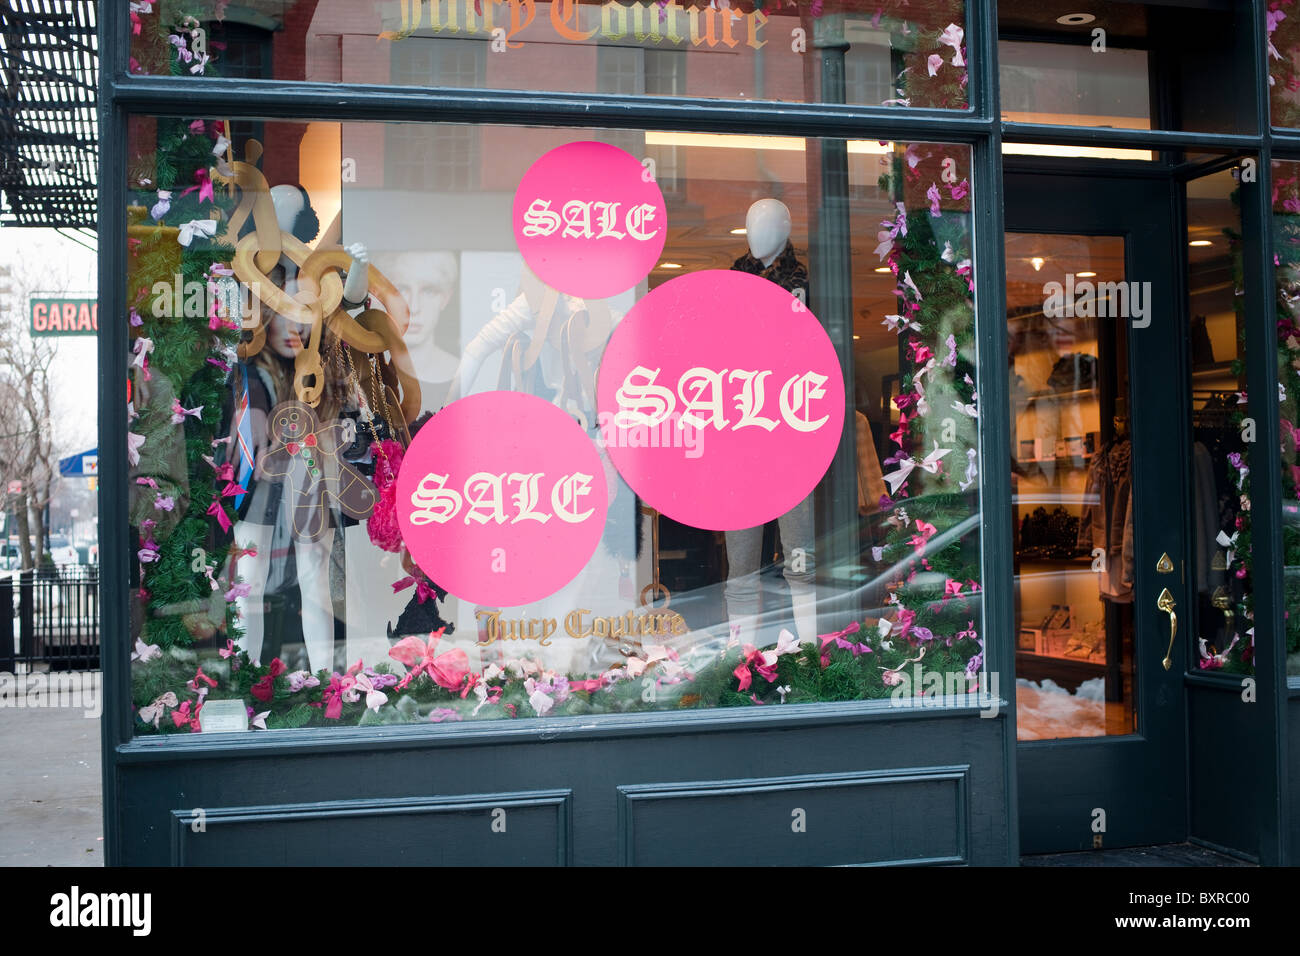 Sales at the Juicy Couture store on Bleecker Street in Greenwich Village in New York - Stock Image